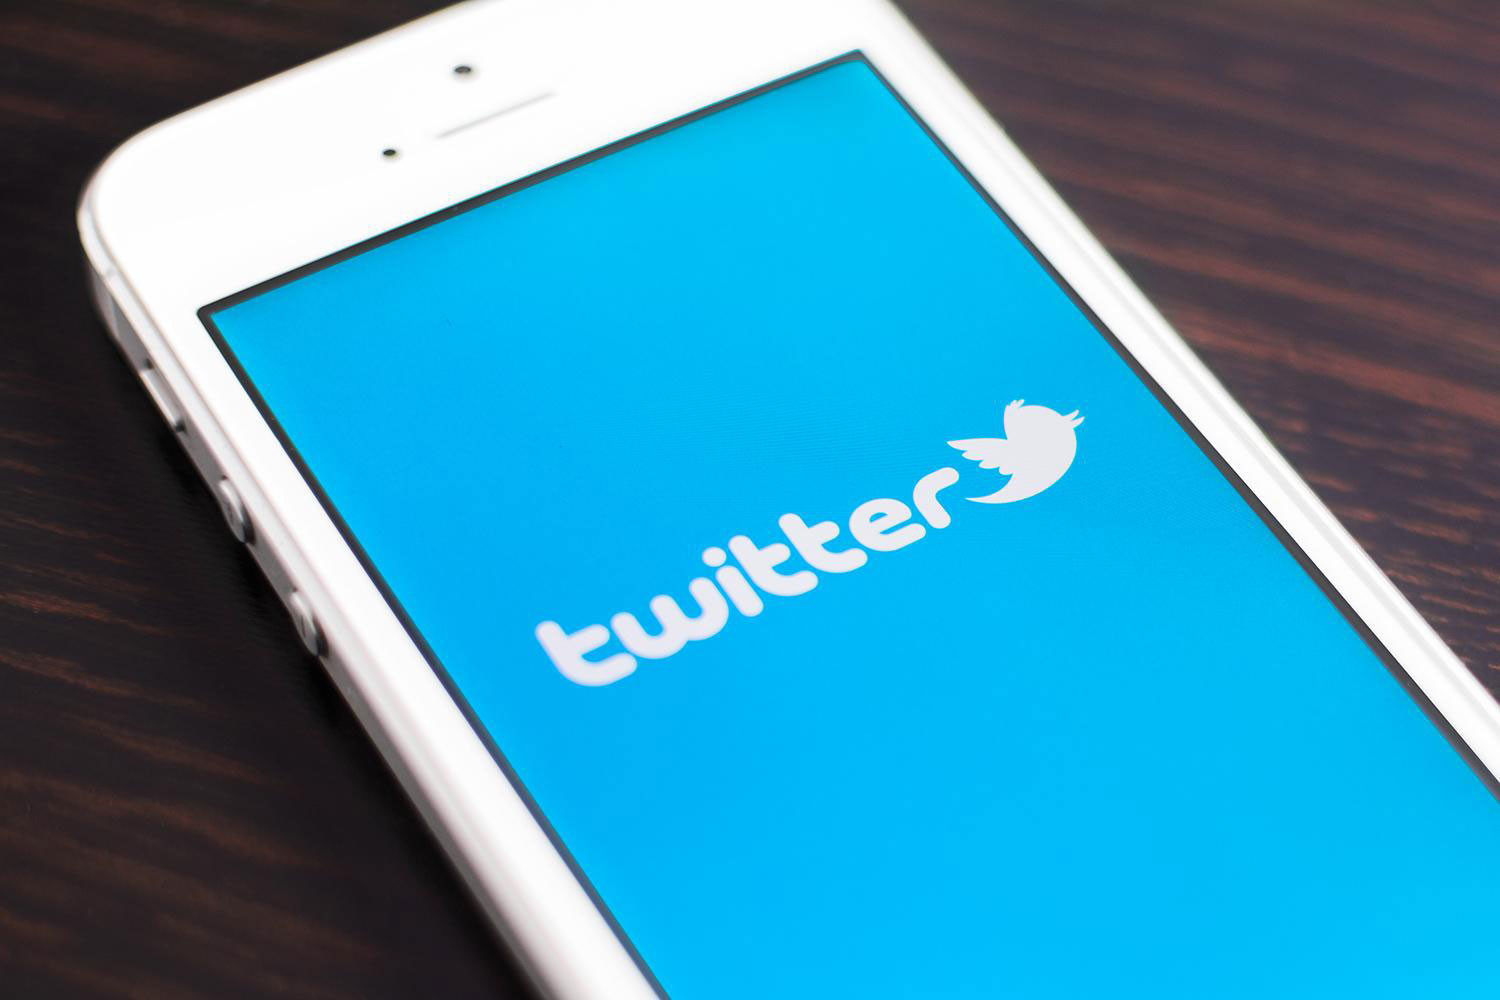 Twitter results disappoint as advertisers abandon the platform